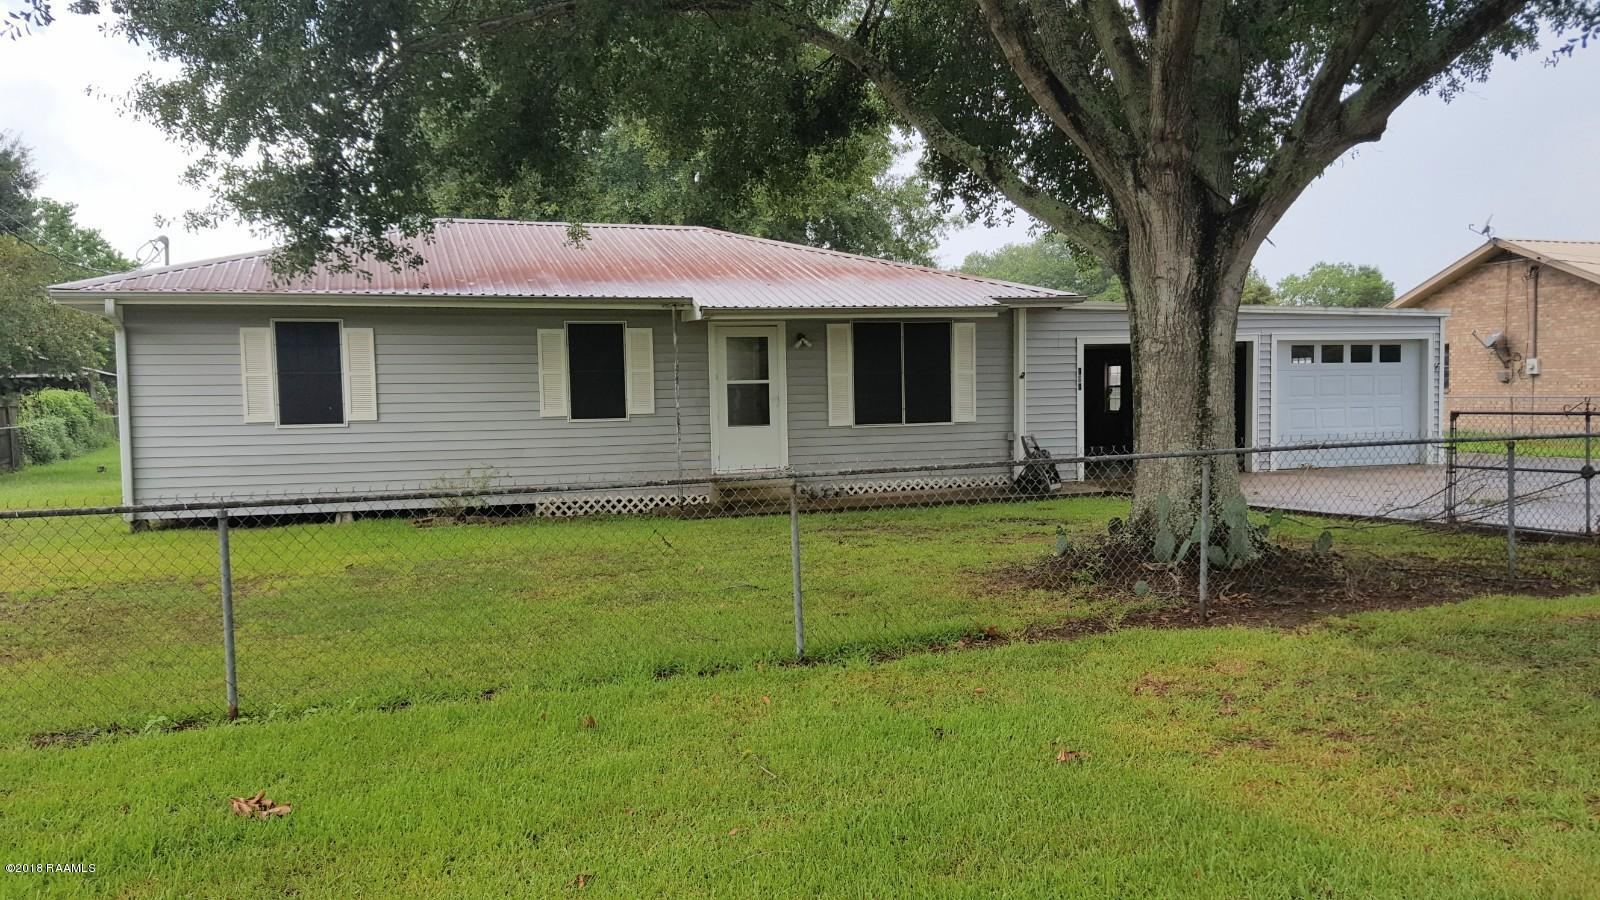 191 Shelton Manuel Road, Eunice, LA 70535 Photo #2